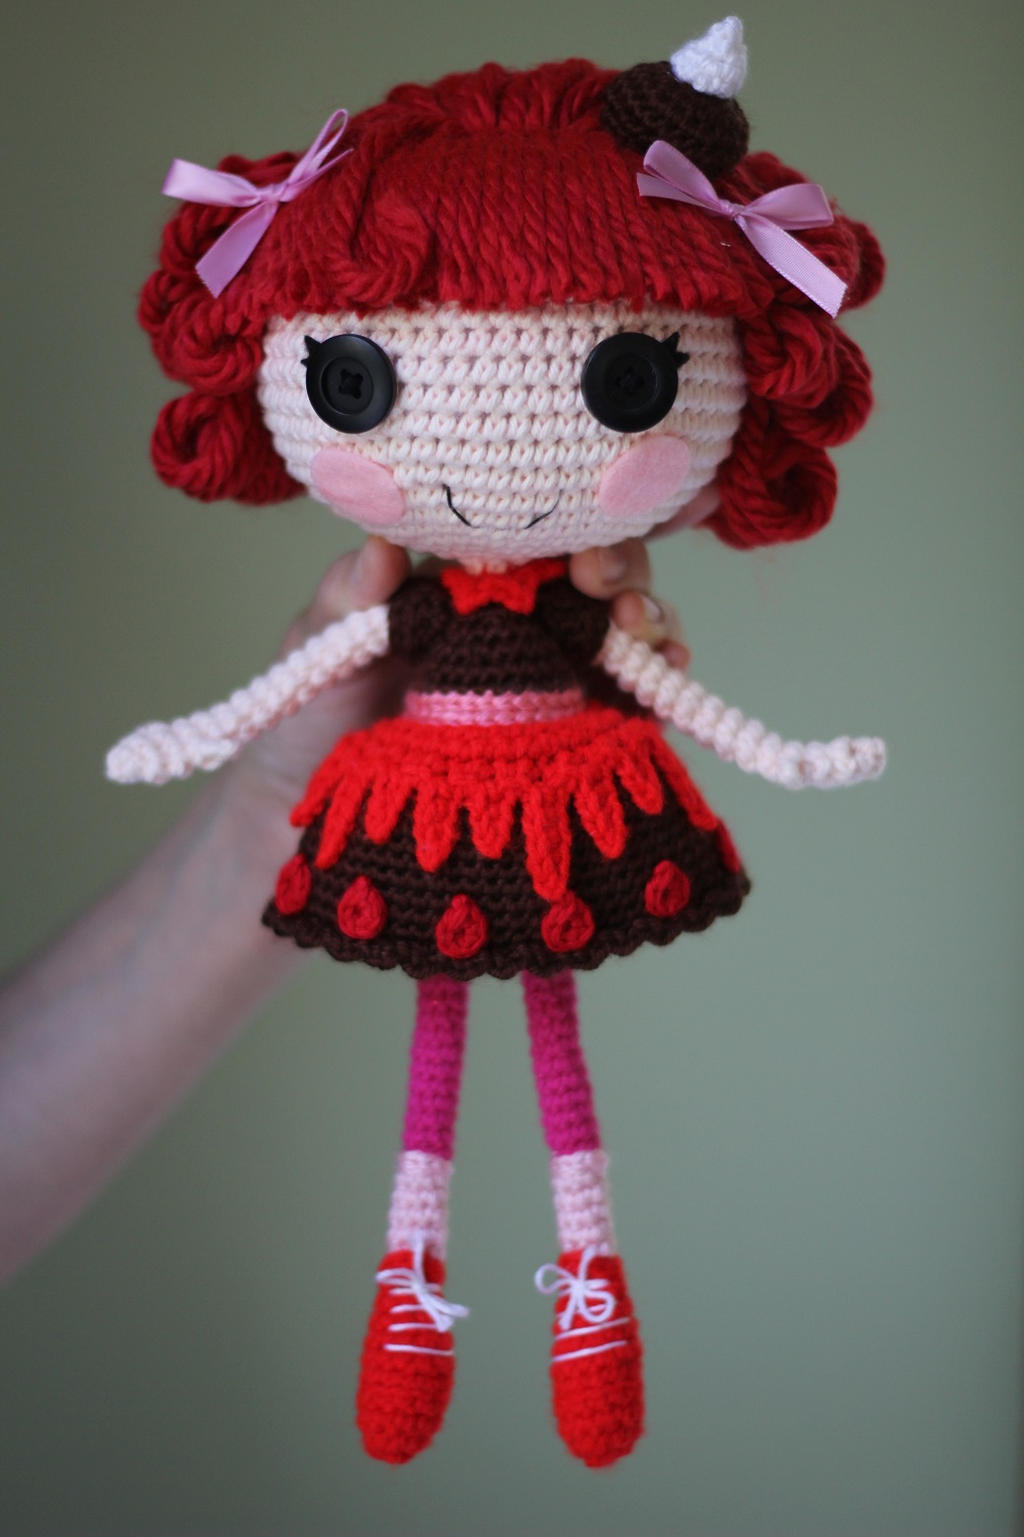 Crochet Hair Doll : LALALOOPSY Choco Whirl Swirl Amigurumi Doll by Npantz22 on DeviantArt